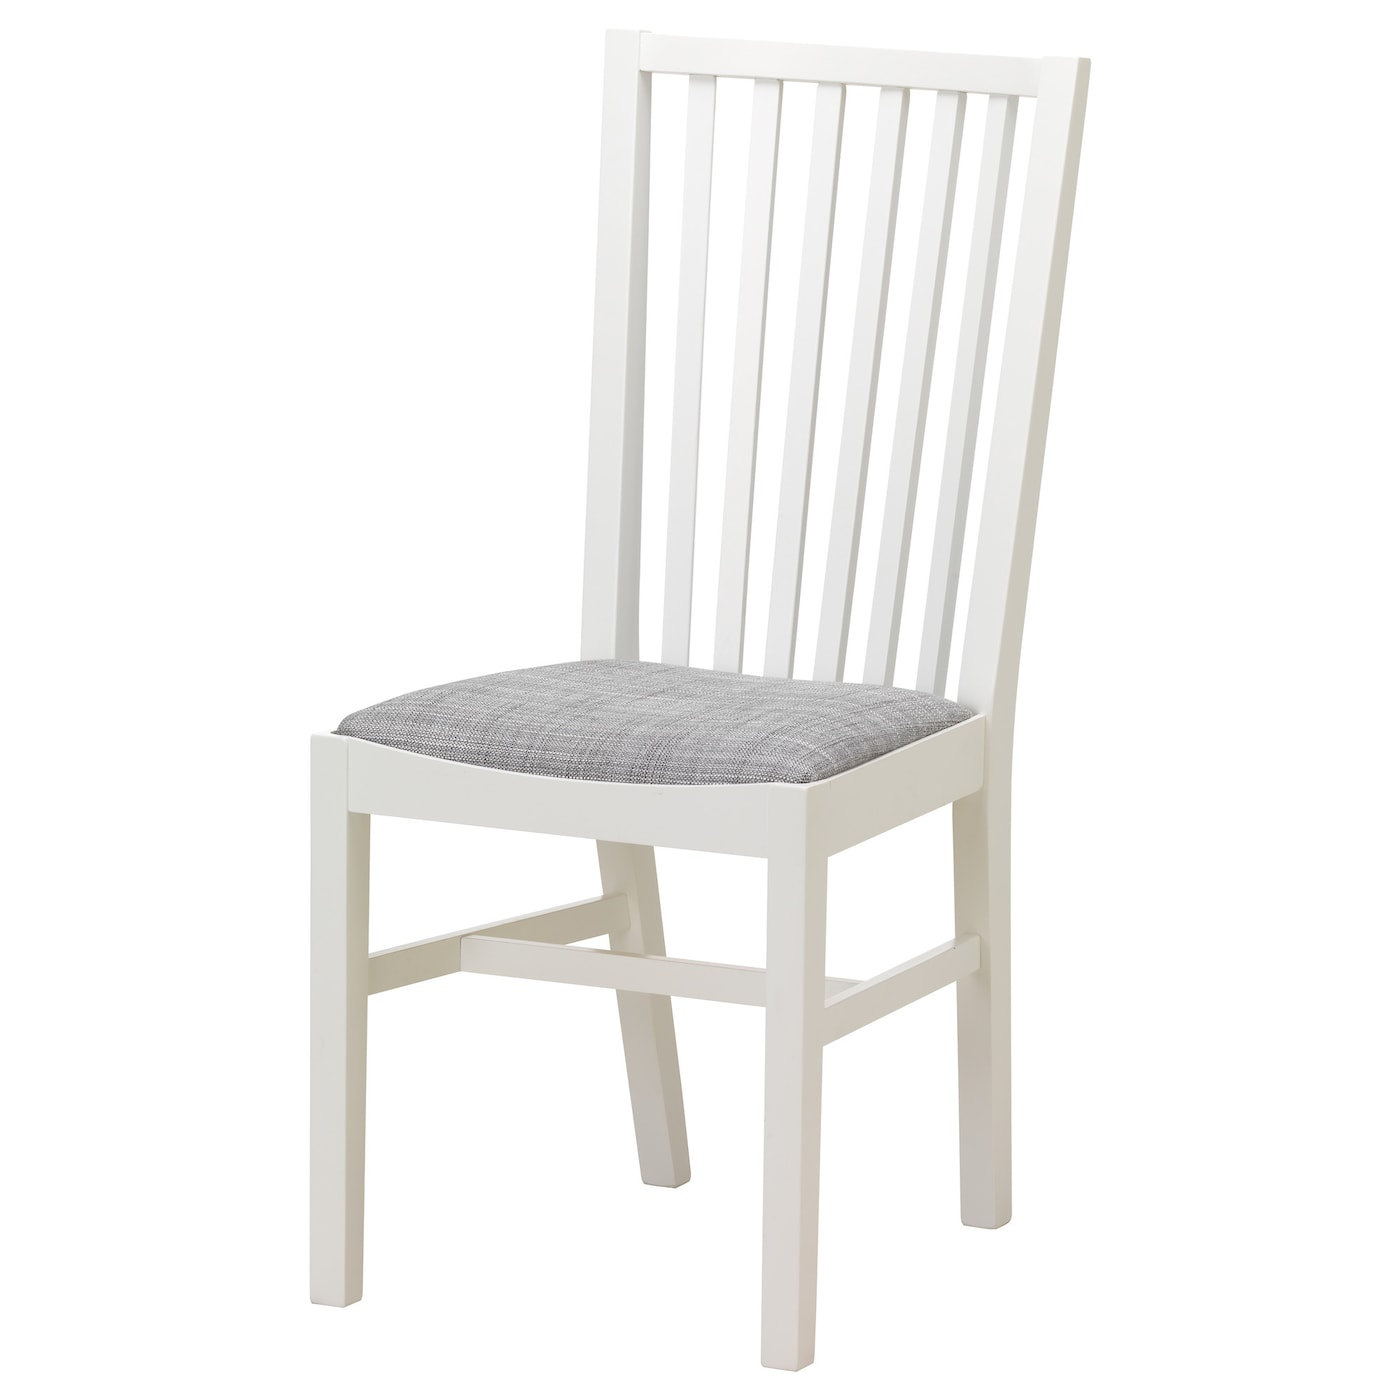 IKEA NORRNÄS chair Solid beech is a hard-wearing natural material.